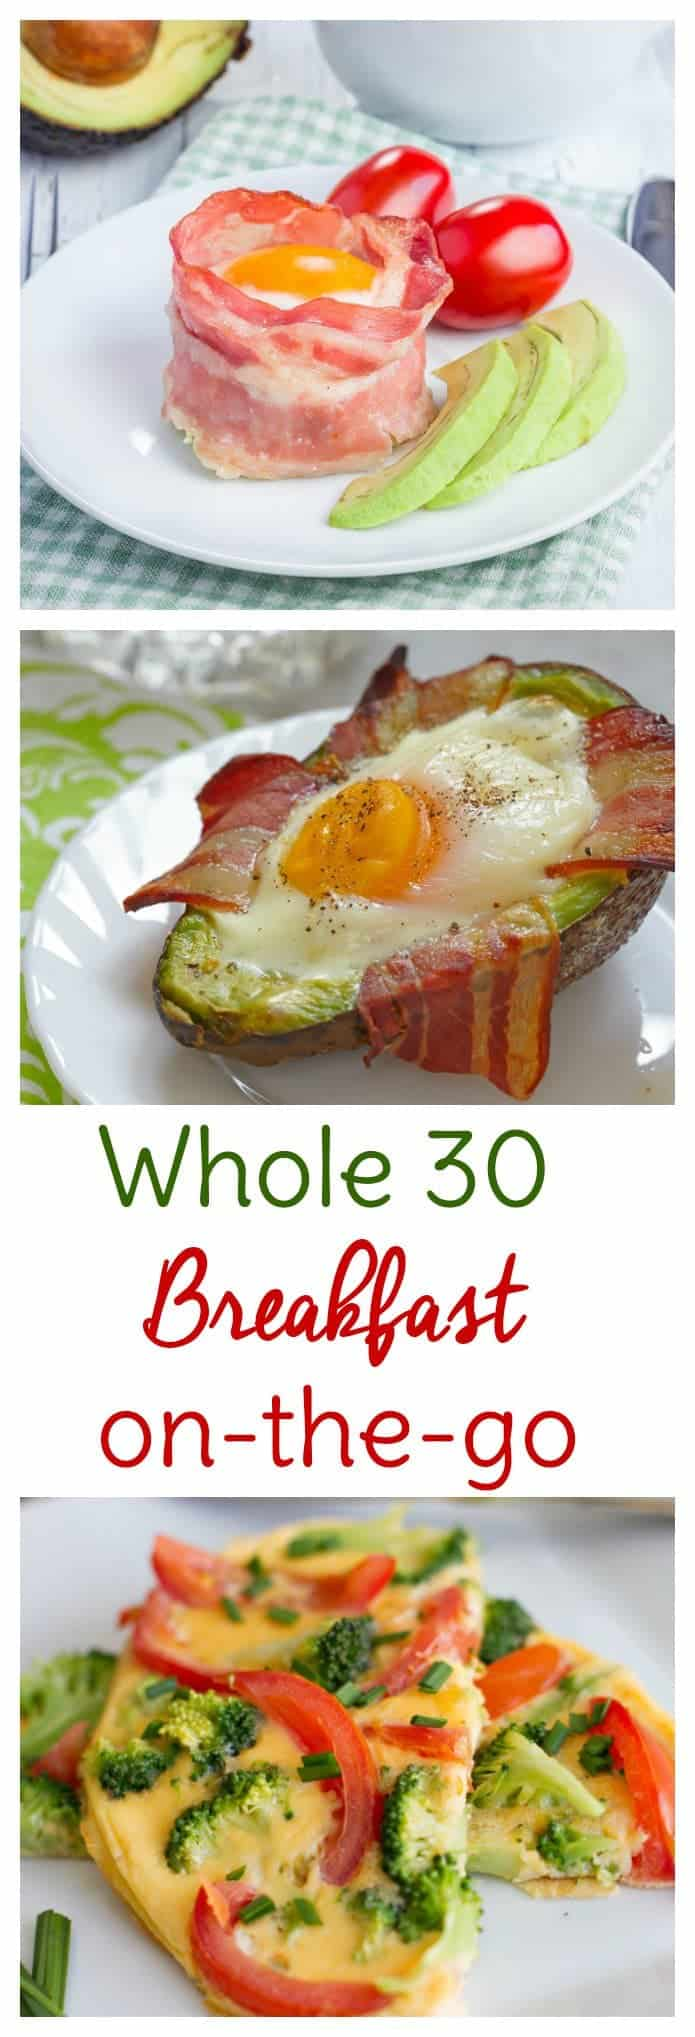 Whole 30 breakfast to go is a convenient way to start your day off on the right track. Make ahead these Whole 30 breakfast recipes or whip them up and eat on your way to work.